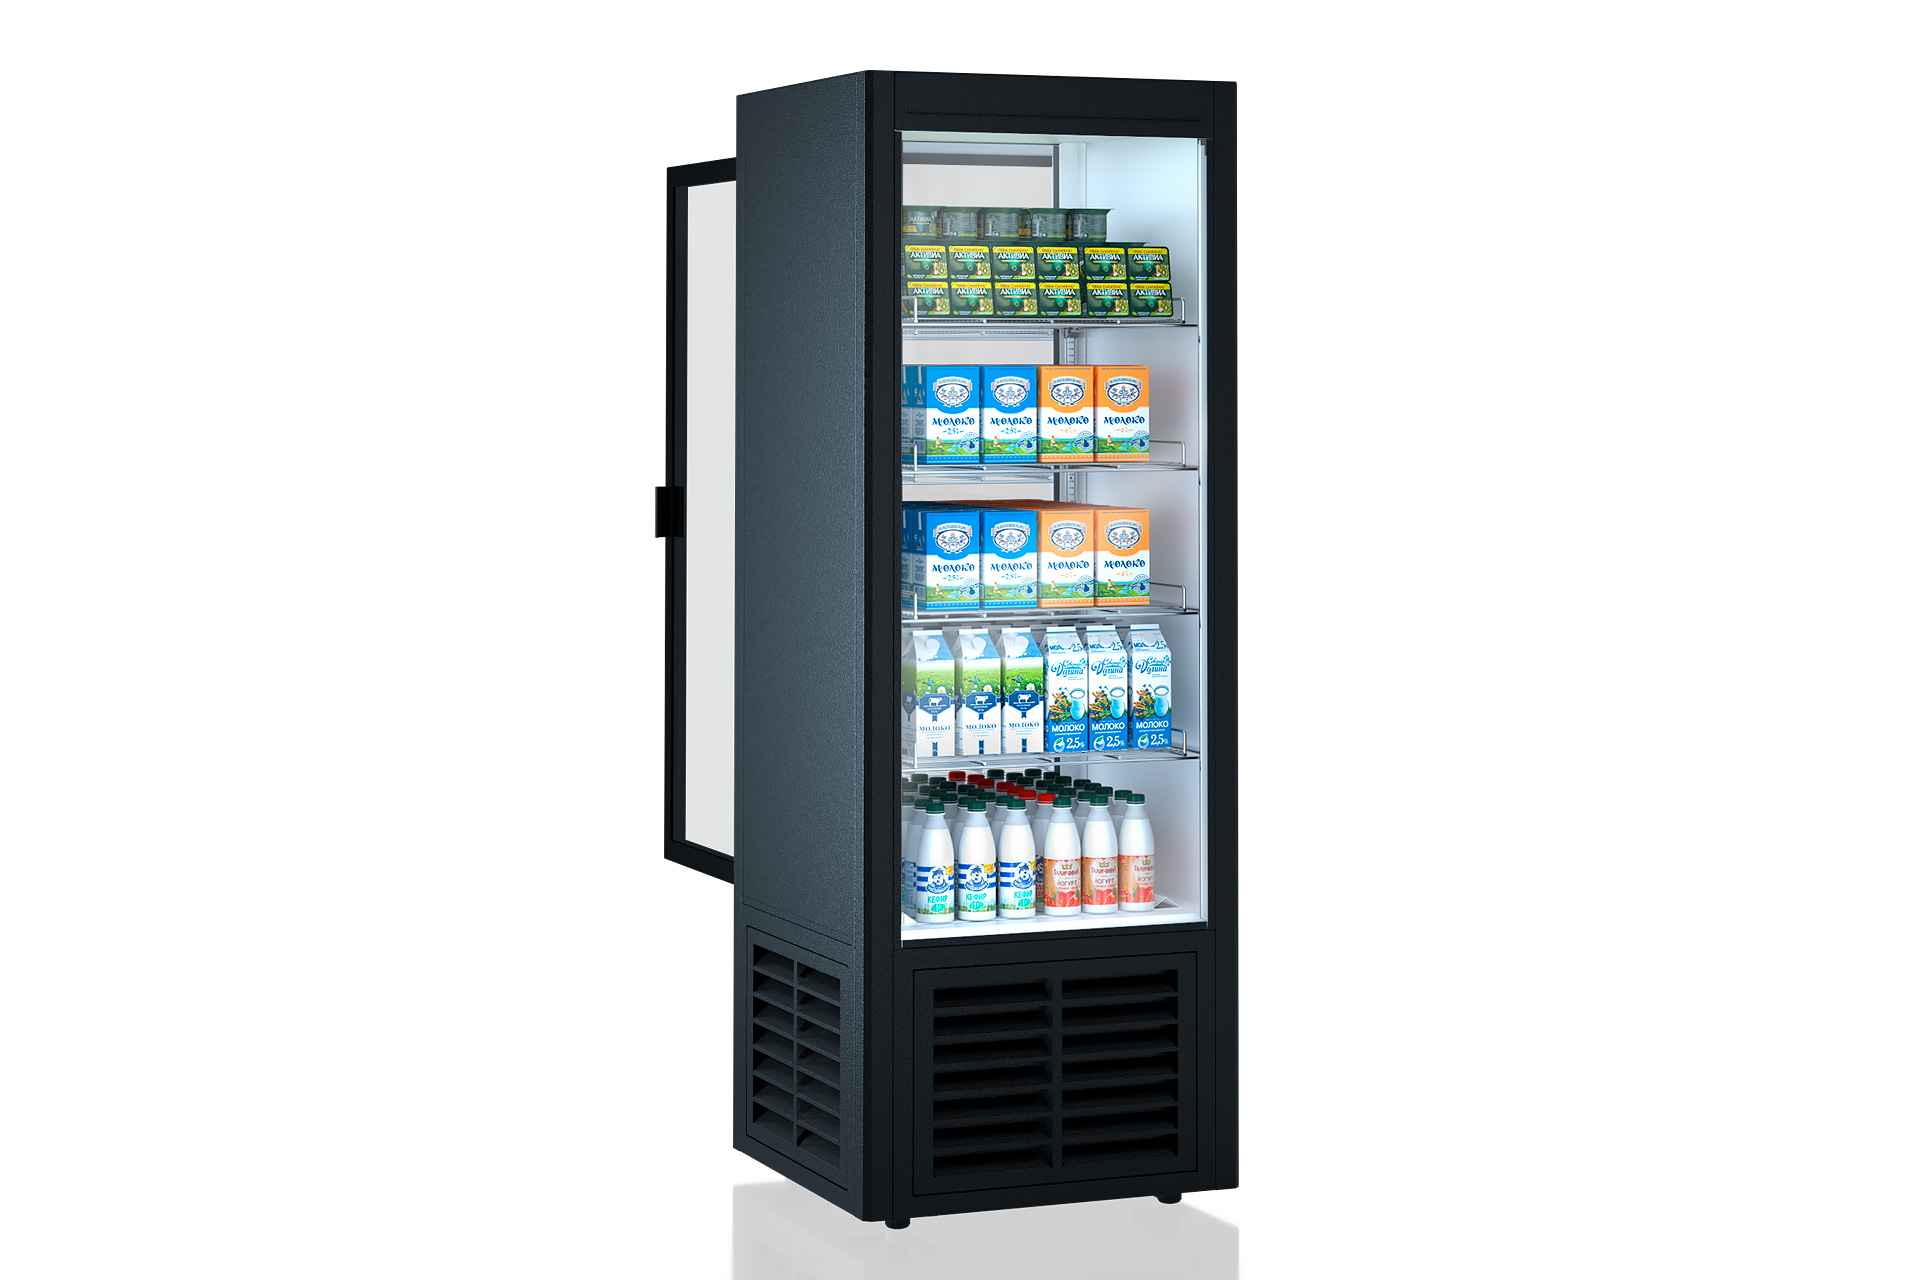 Refrigerated cabinets Kansas А2SG 070 HT 1HD 210-D600A-070